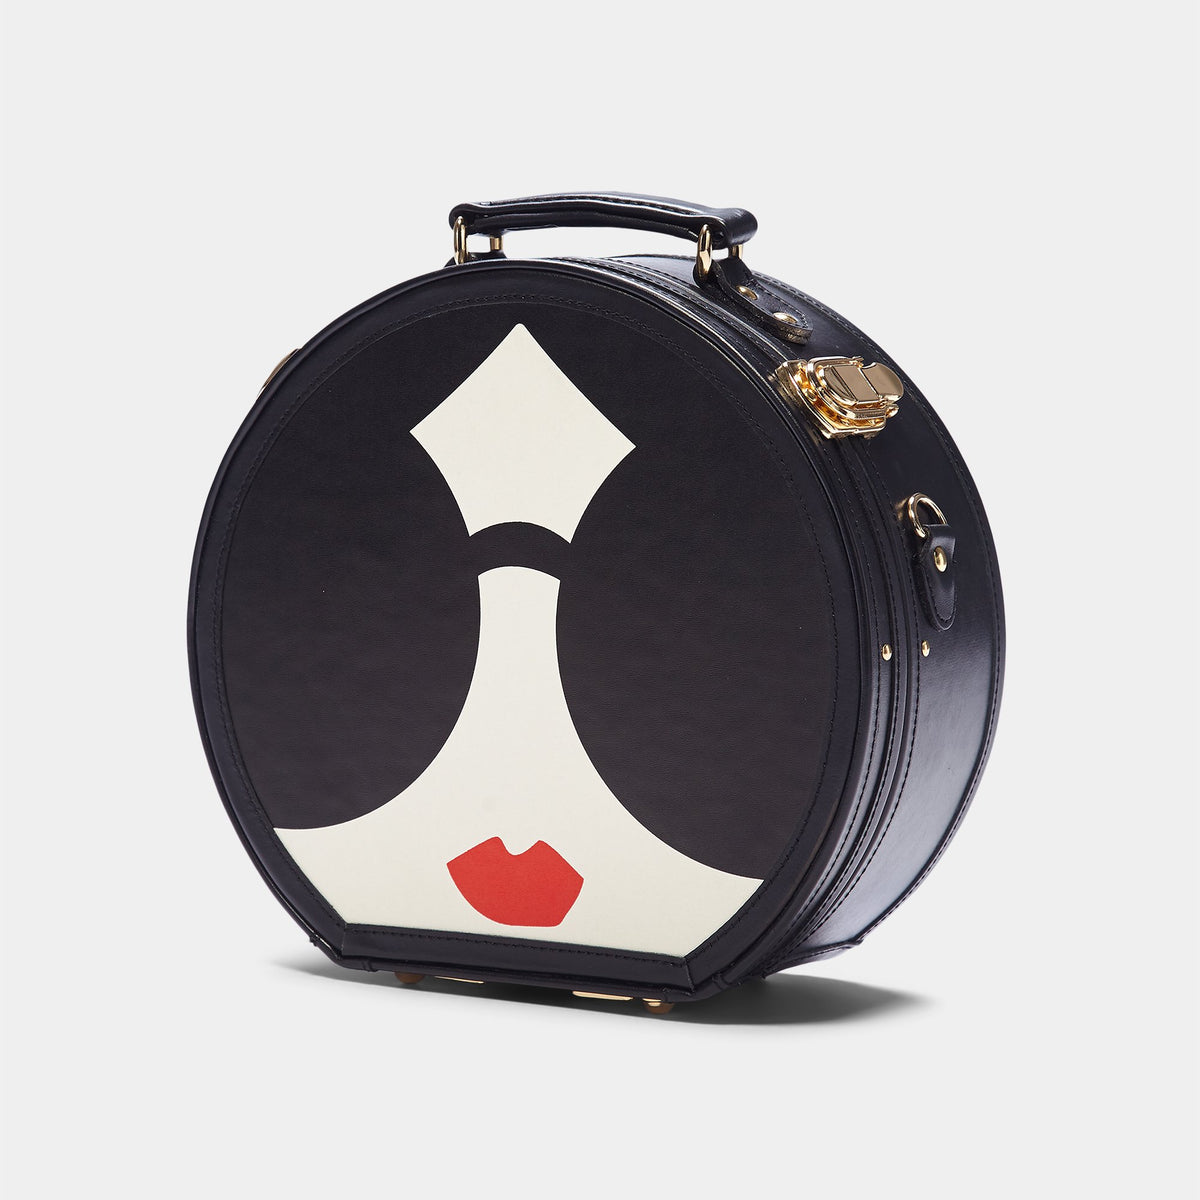 The alice + olivia X SteamLine - Small Hat Box